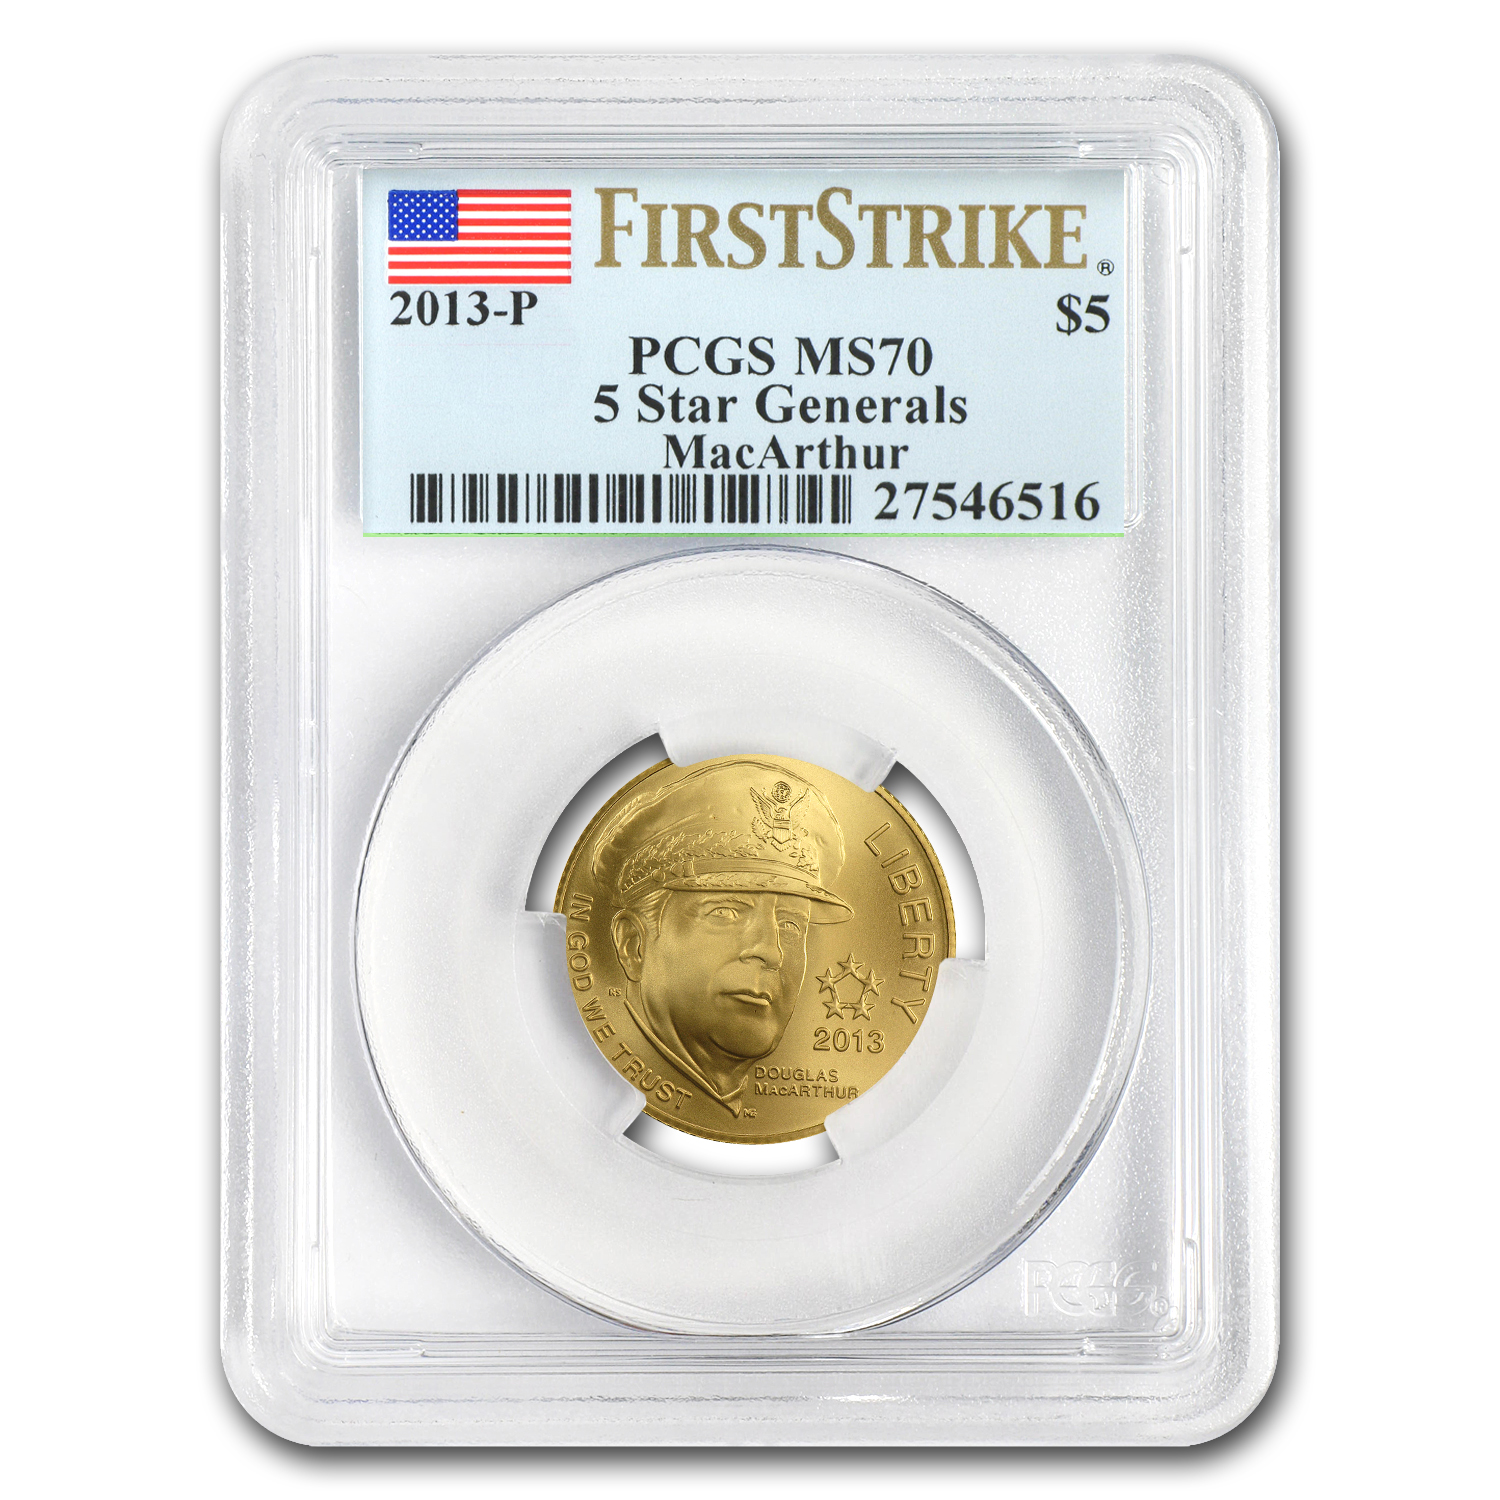 2013-P Five Star General - $5 Gold Commem - MS-70 PCGS (FS)